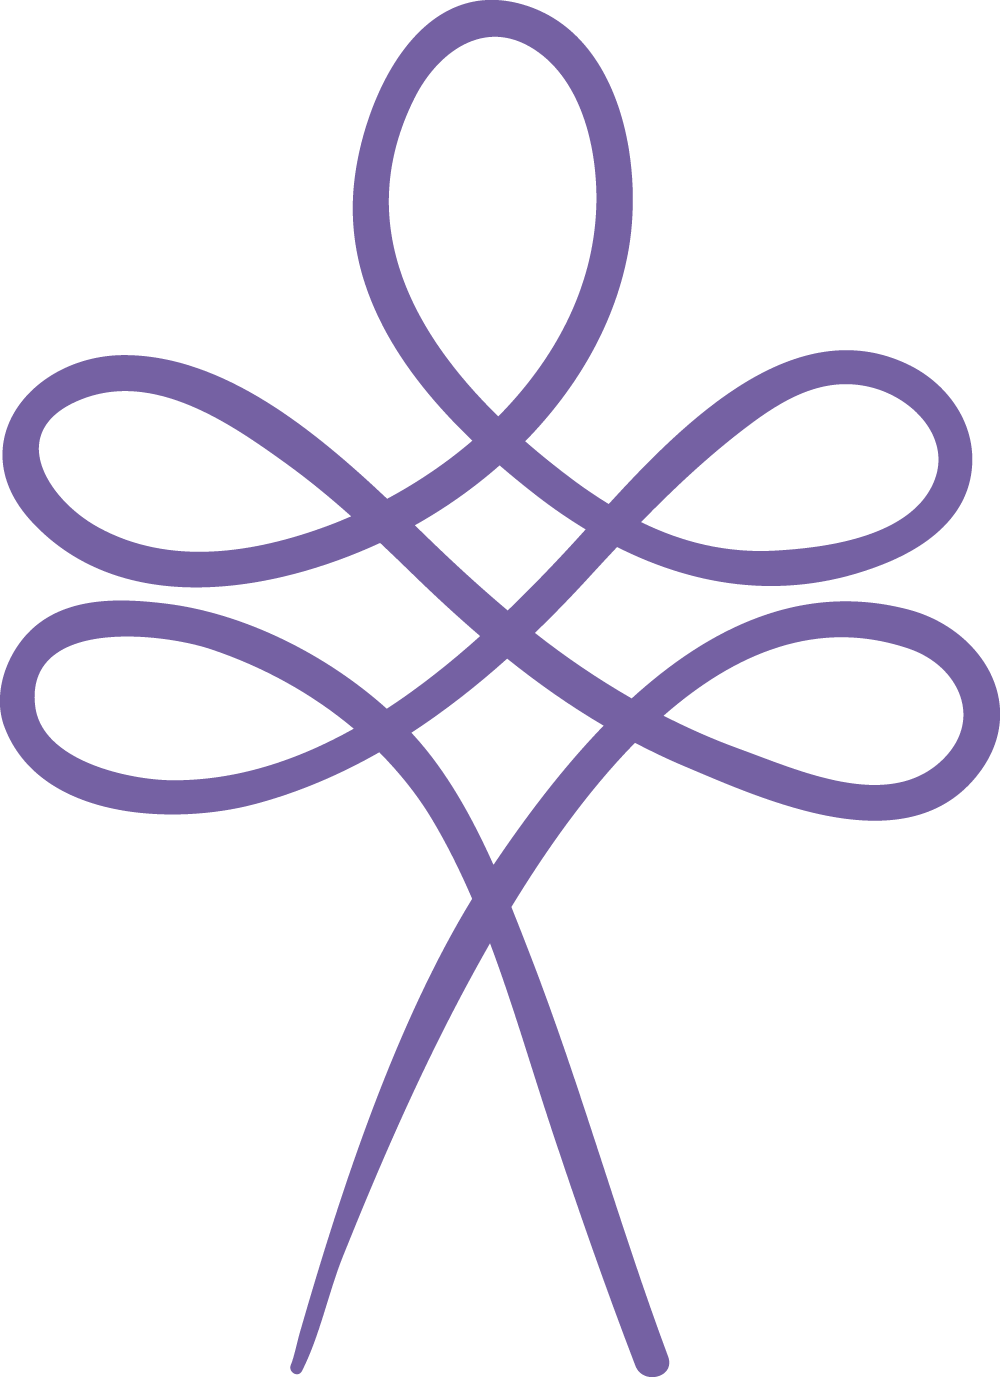 logo-symbol-ora-lee-smith-cancer-research-foundation-2-0-lavender